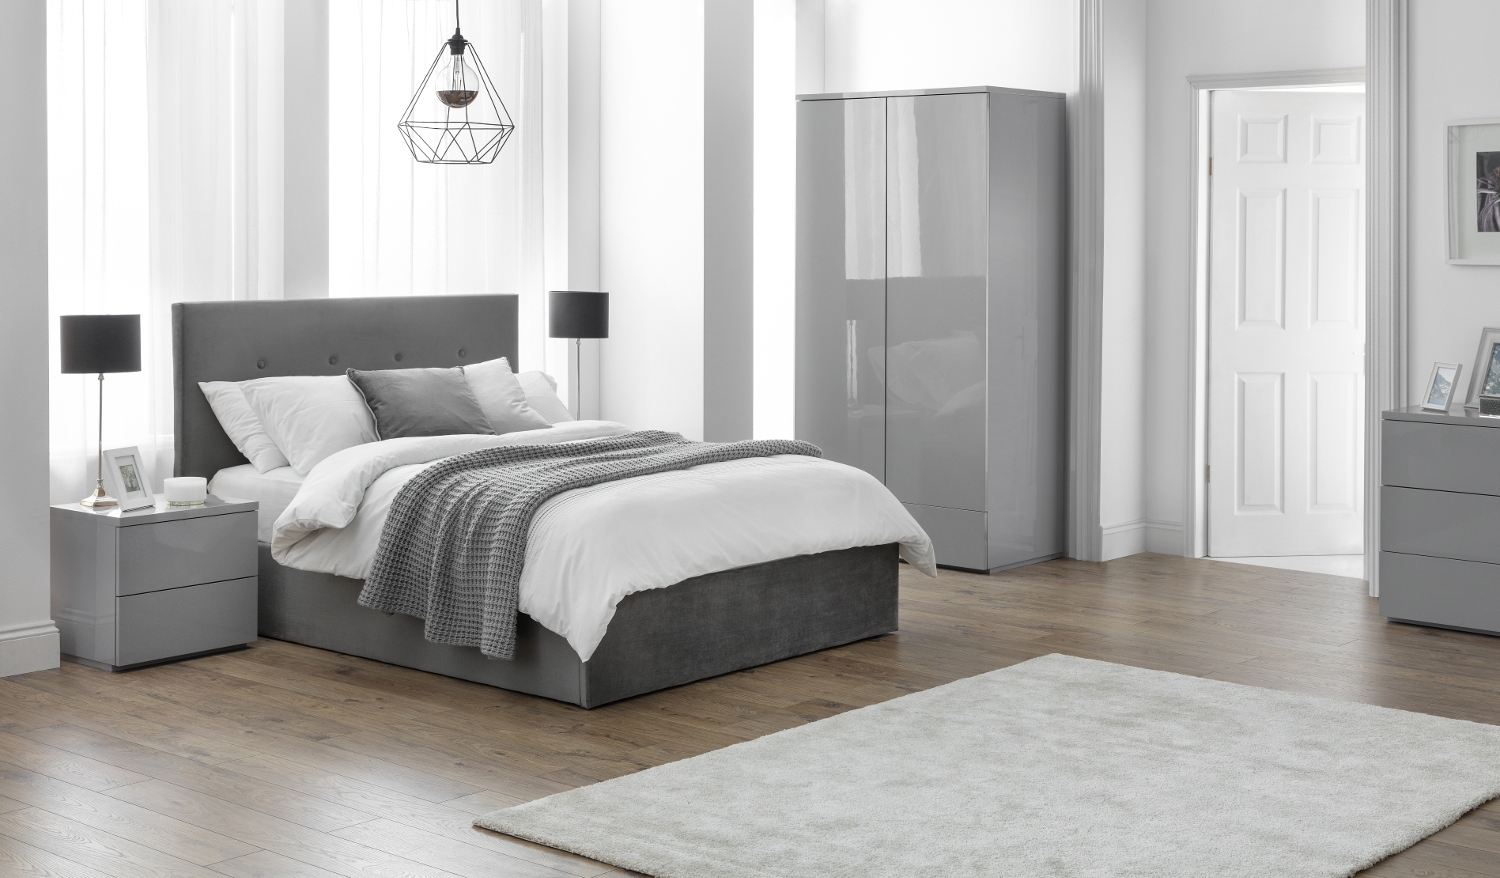 Monaco Grey Wooden Bedroom Furniture Collection